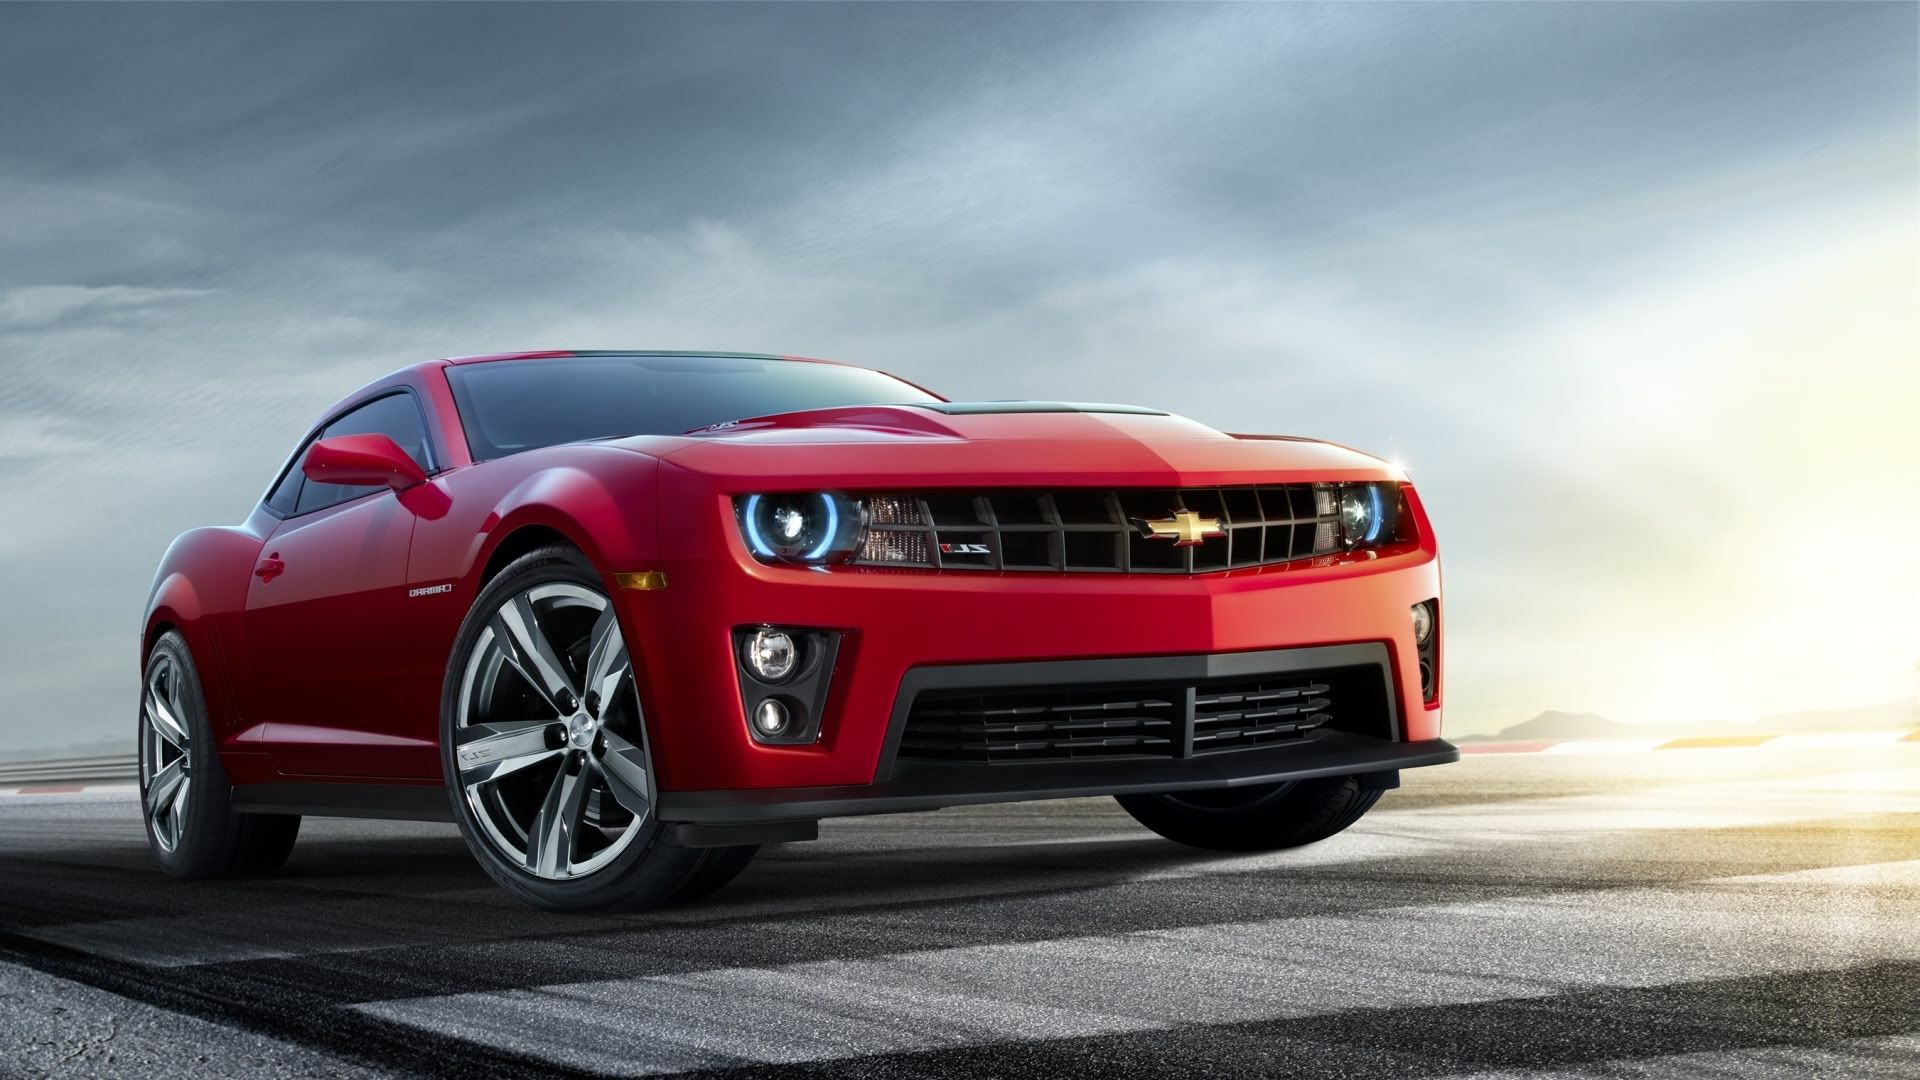 Amb wallpapers provides you the latest chevrolet camaro we update the latest collection of chevrolet camaro images on daily basis only for you and it is